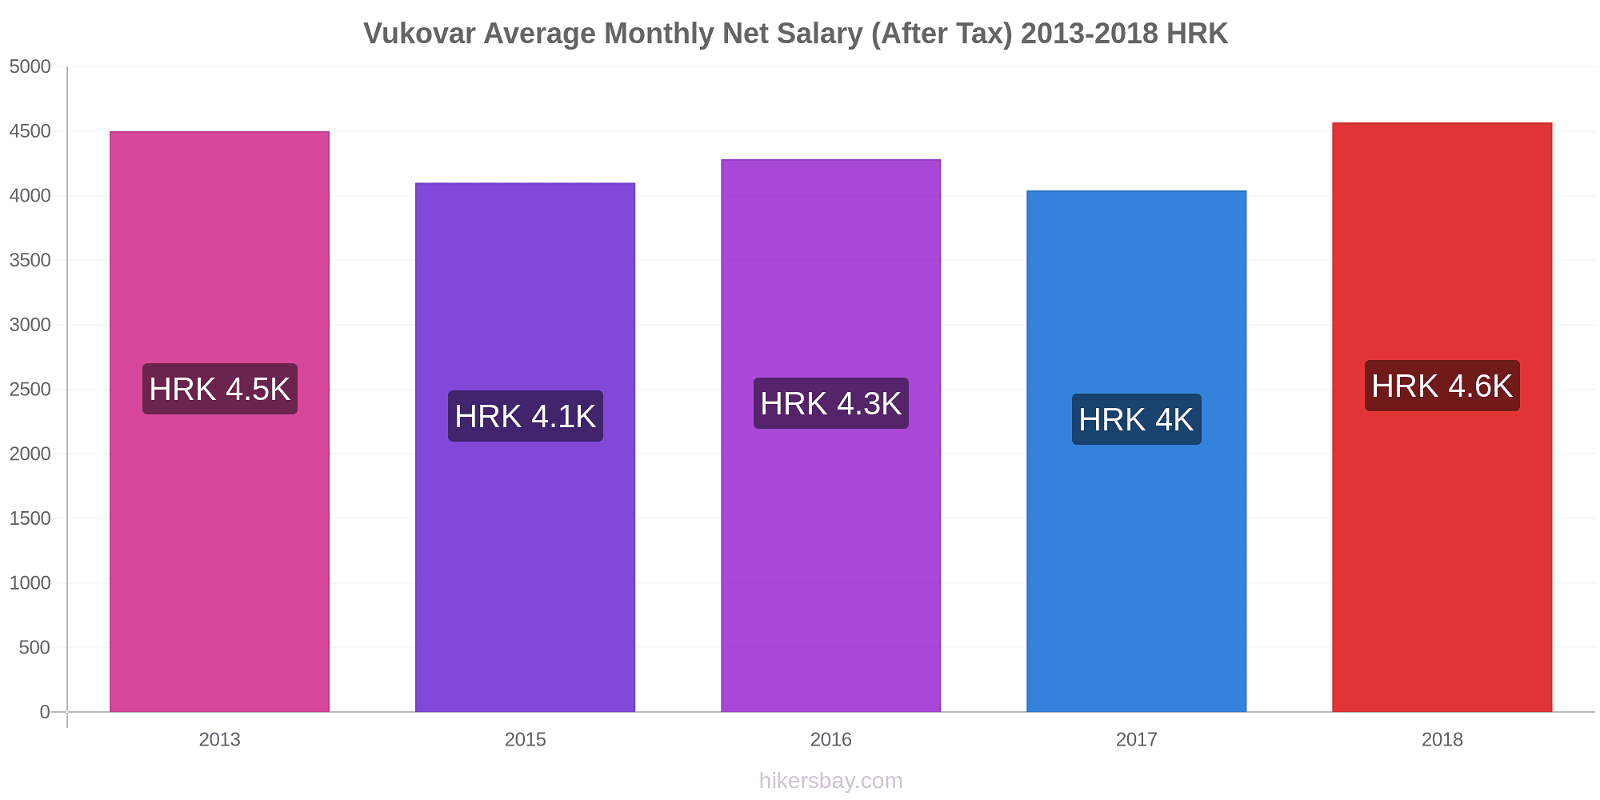 Vukovar price changes Average Monthly Net Salary (After Tax) hikersbay.com